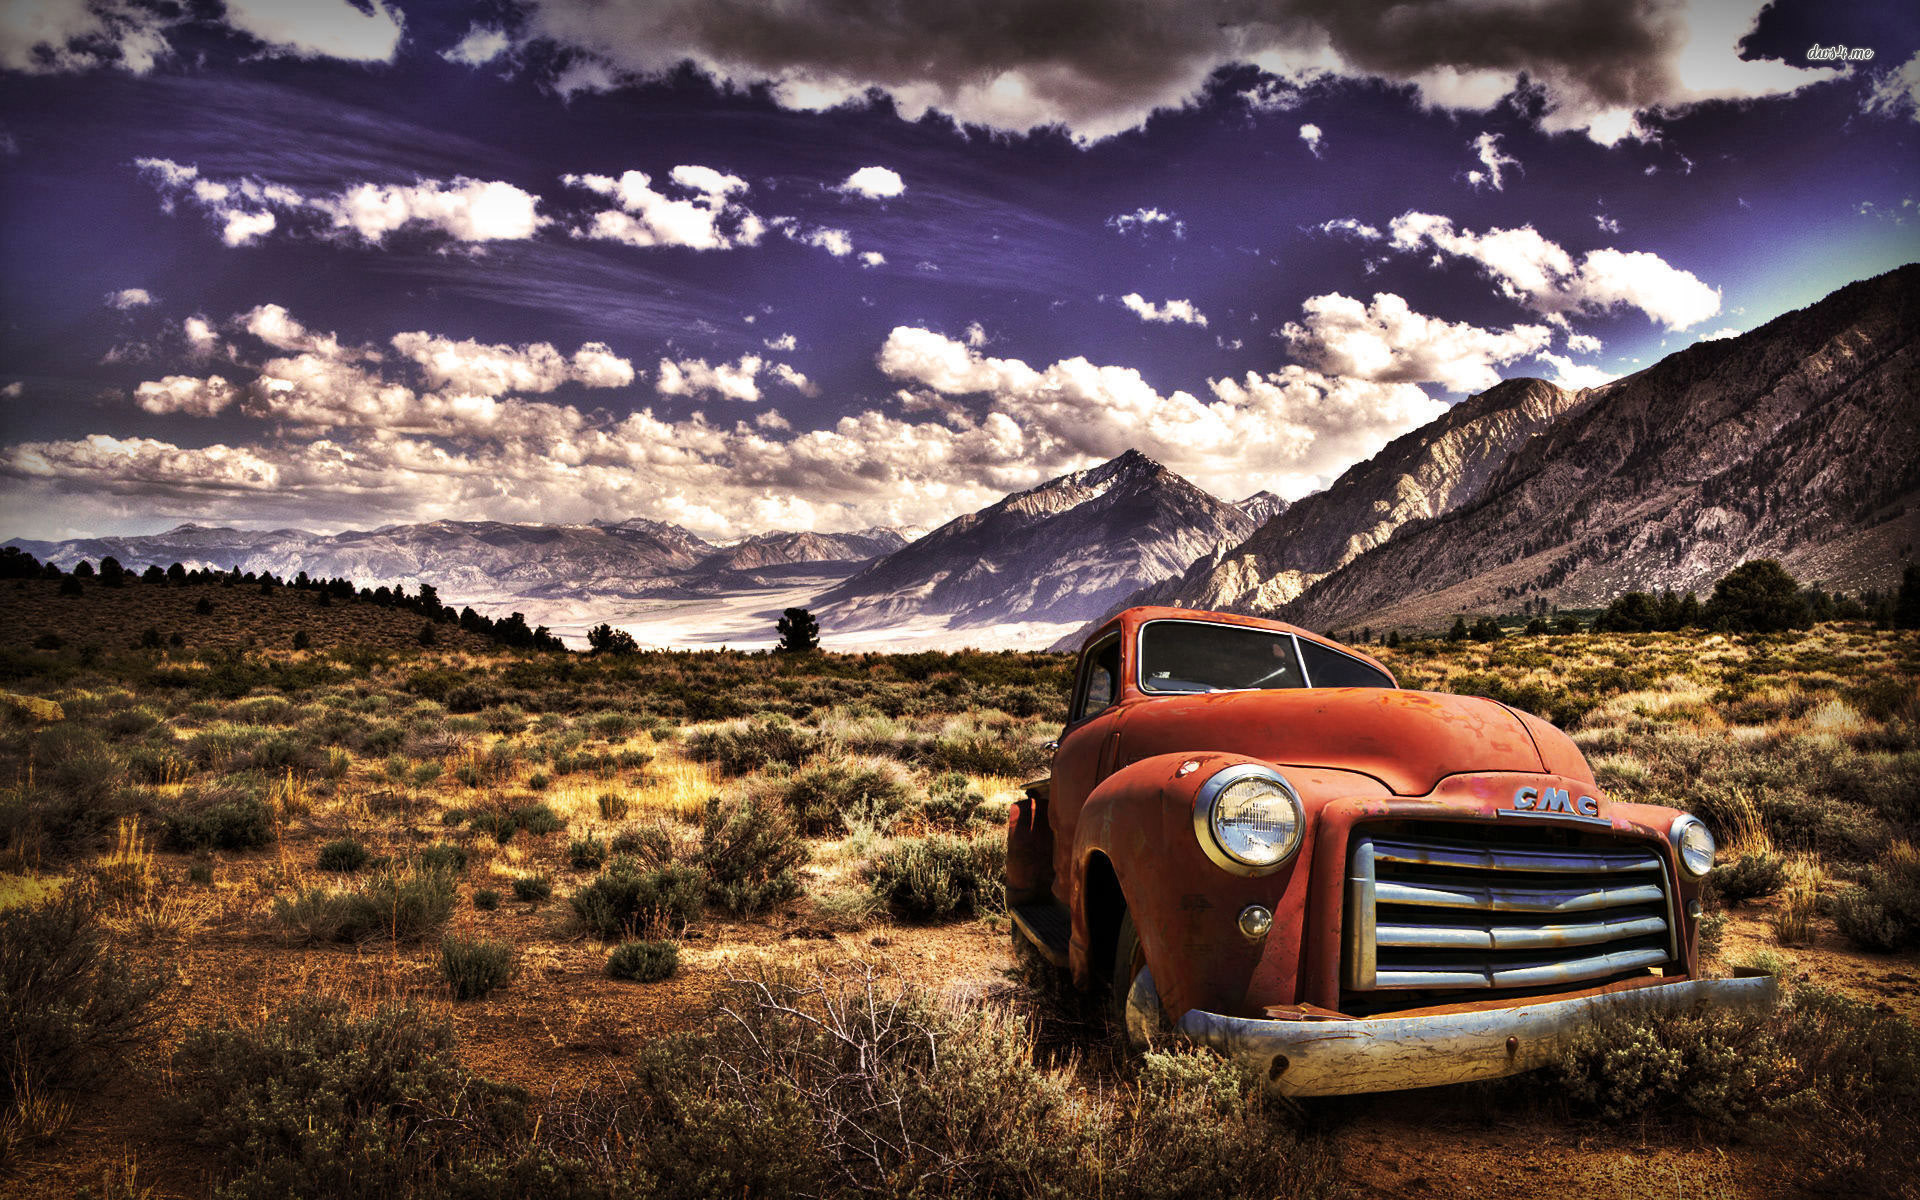 Old Chevy Truck Wallpapers 44 Images